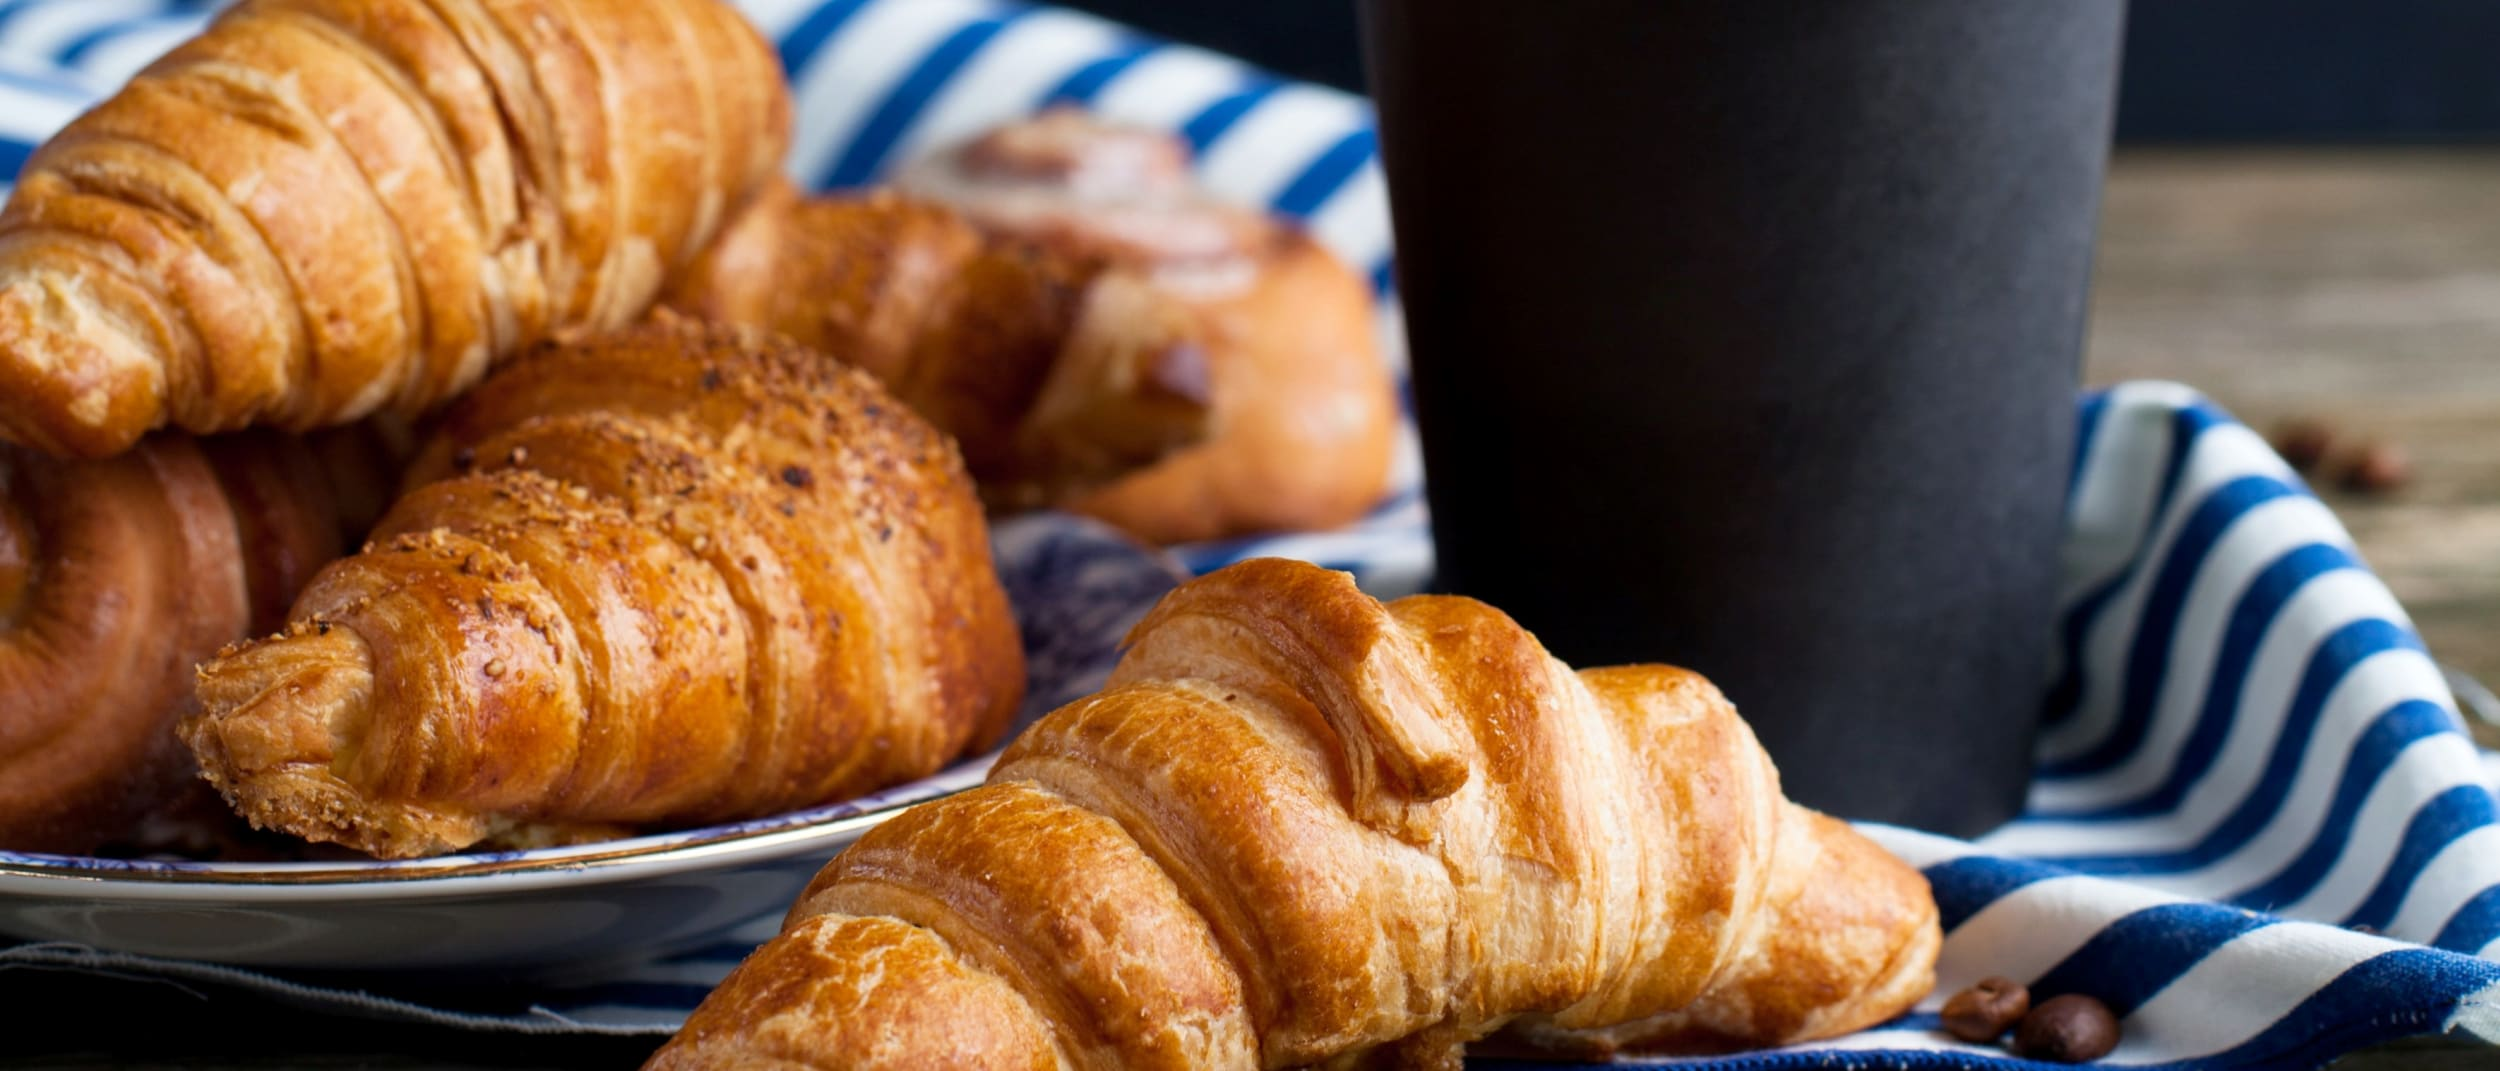 Gloria Jeans: Coffee + ham and cheese croissant $9.99